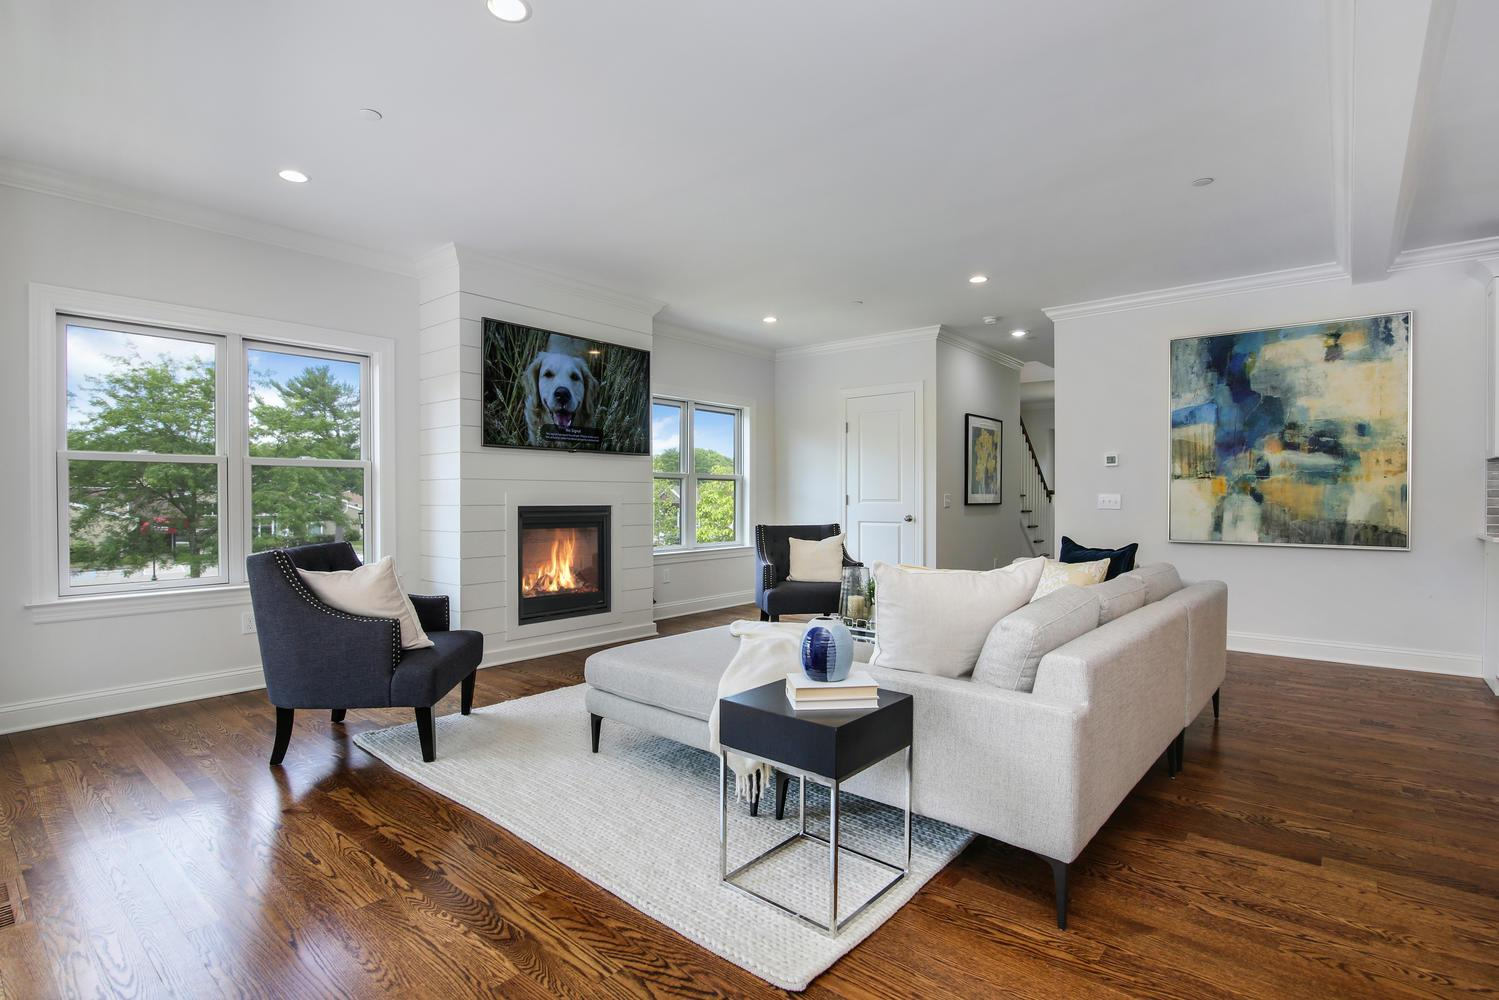 Living Area featured in the Dogwood By Laurel Ridge Development, Inc. in New York, NY